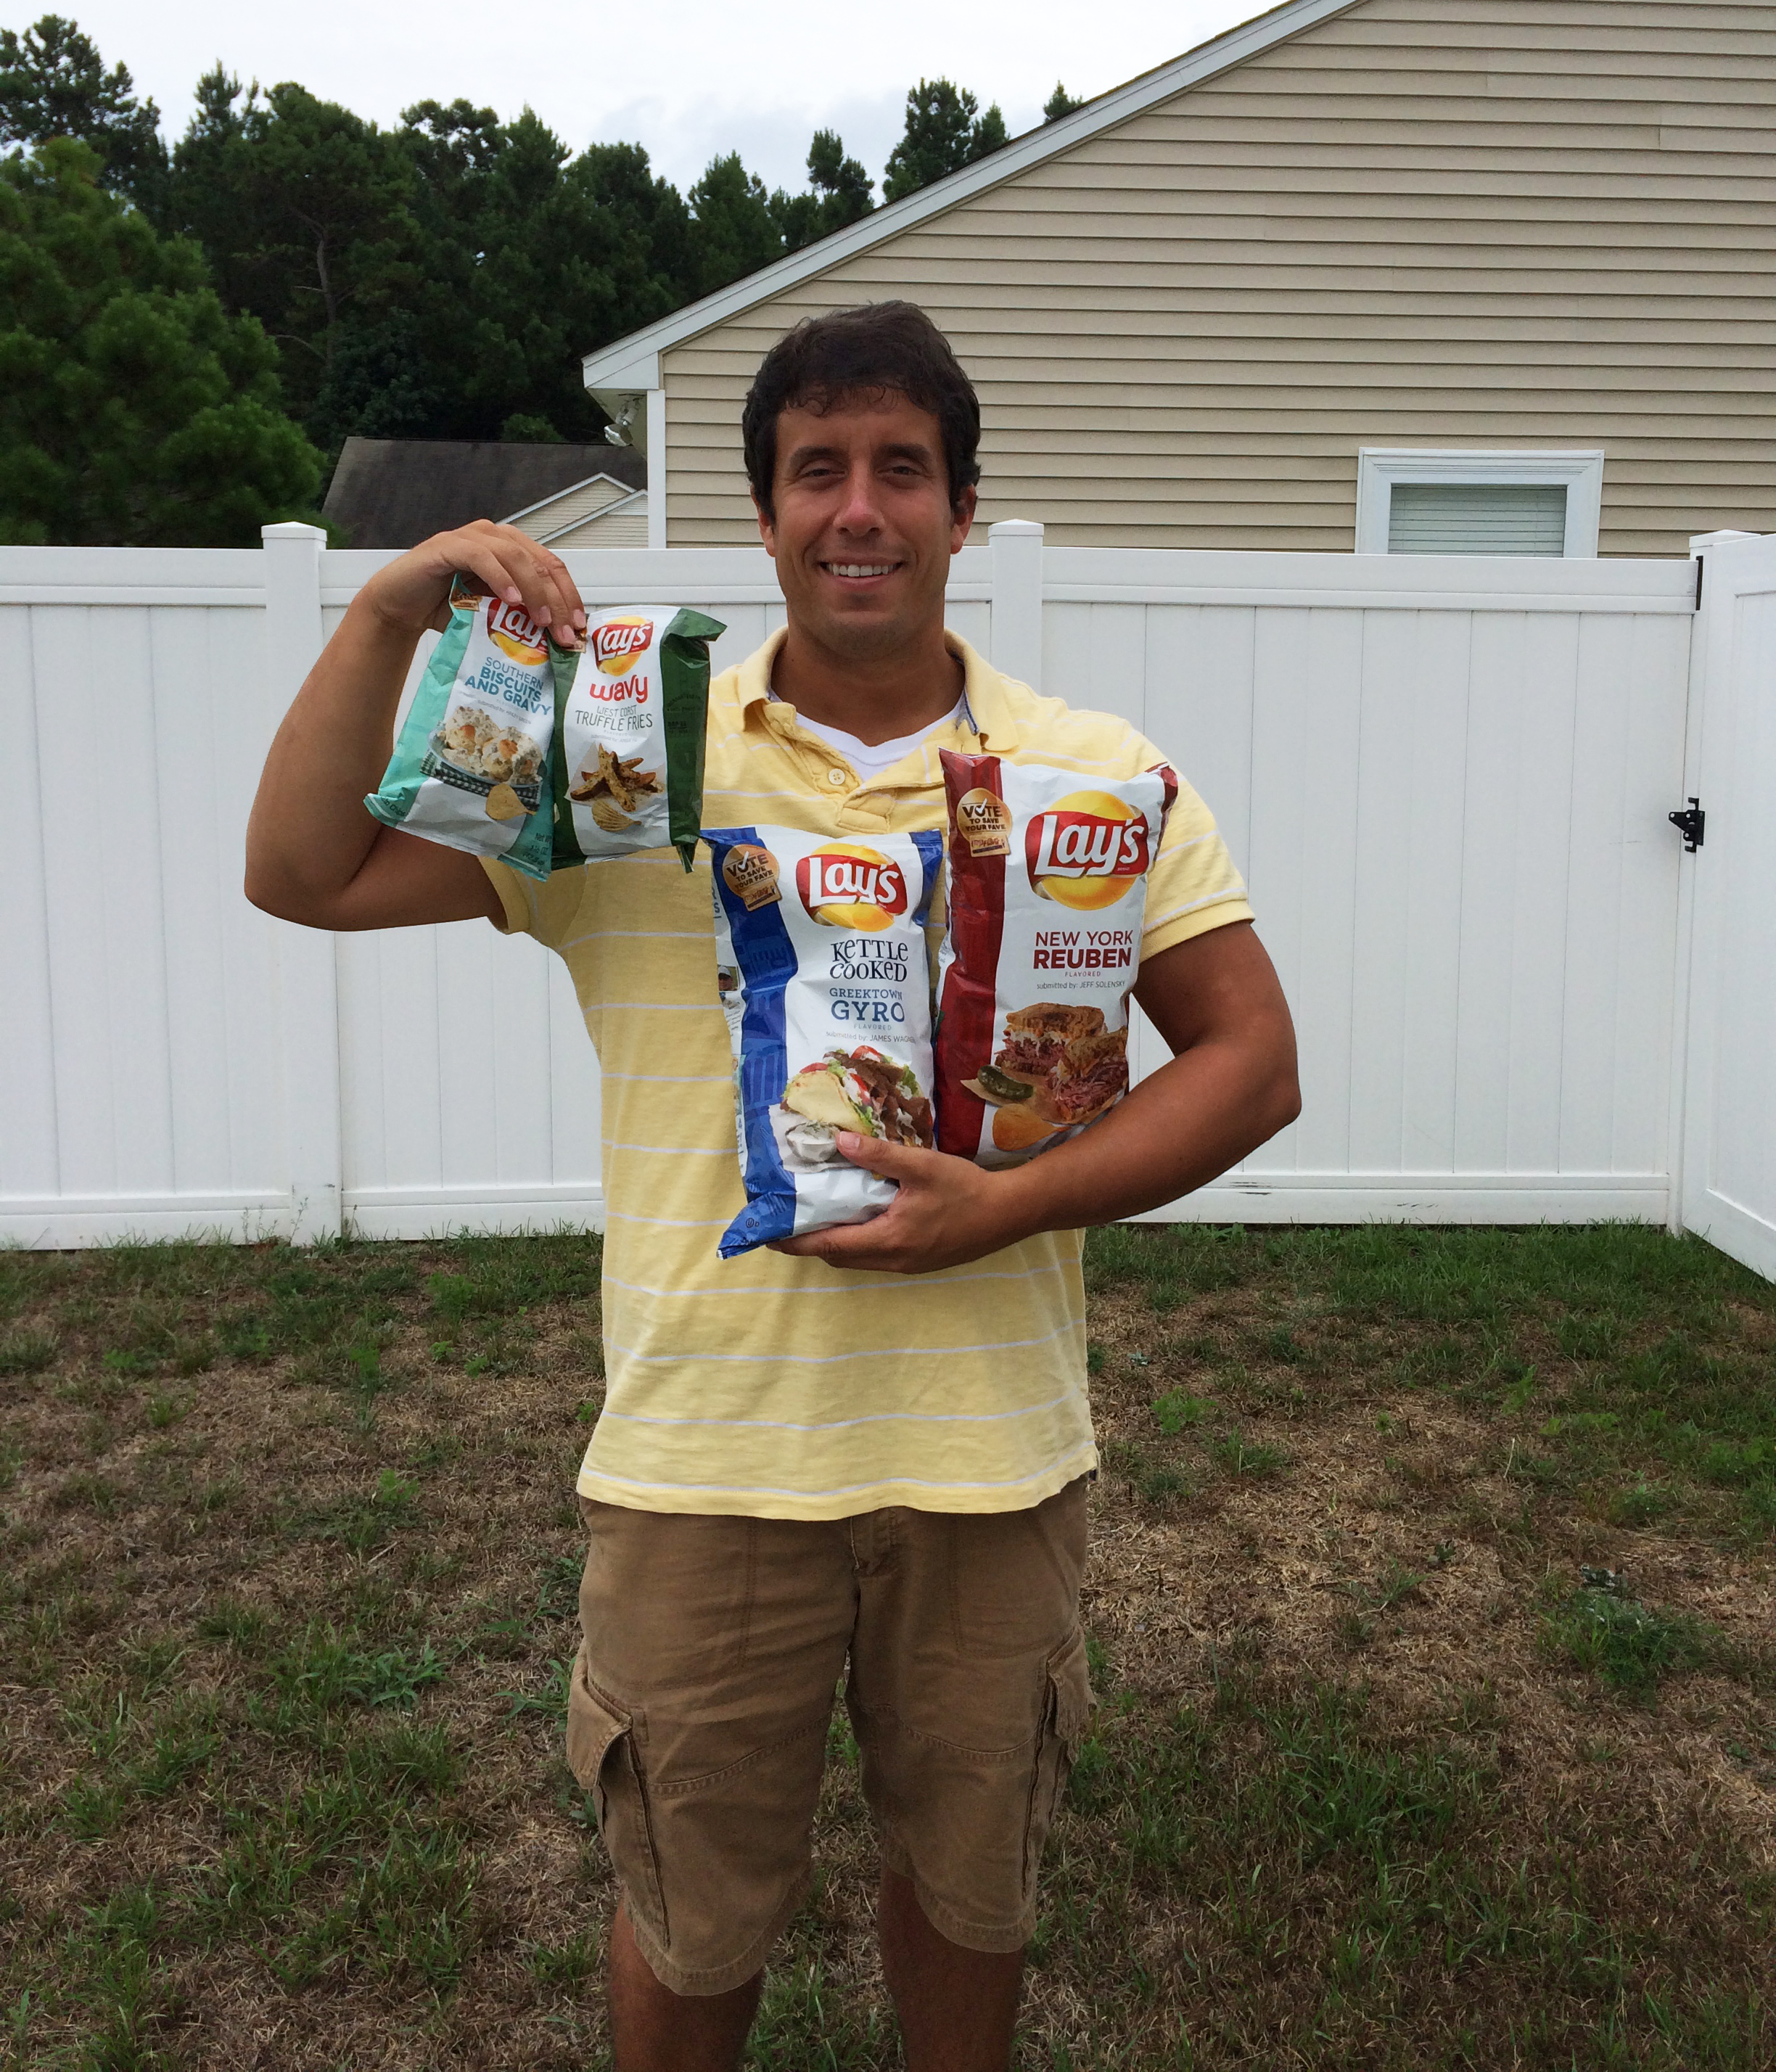 Me holding the 2015 #DoUsAFlavor Lay's potato chips.